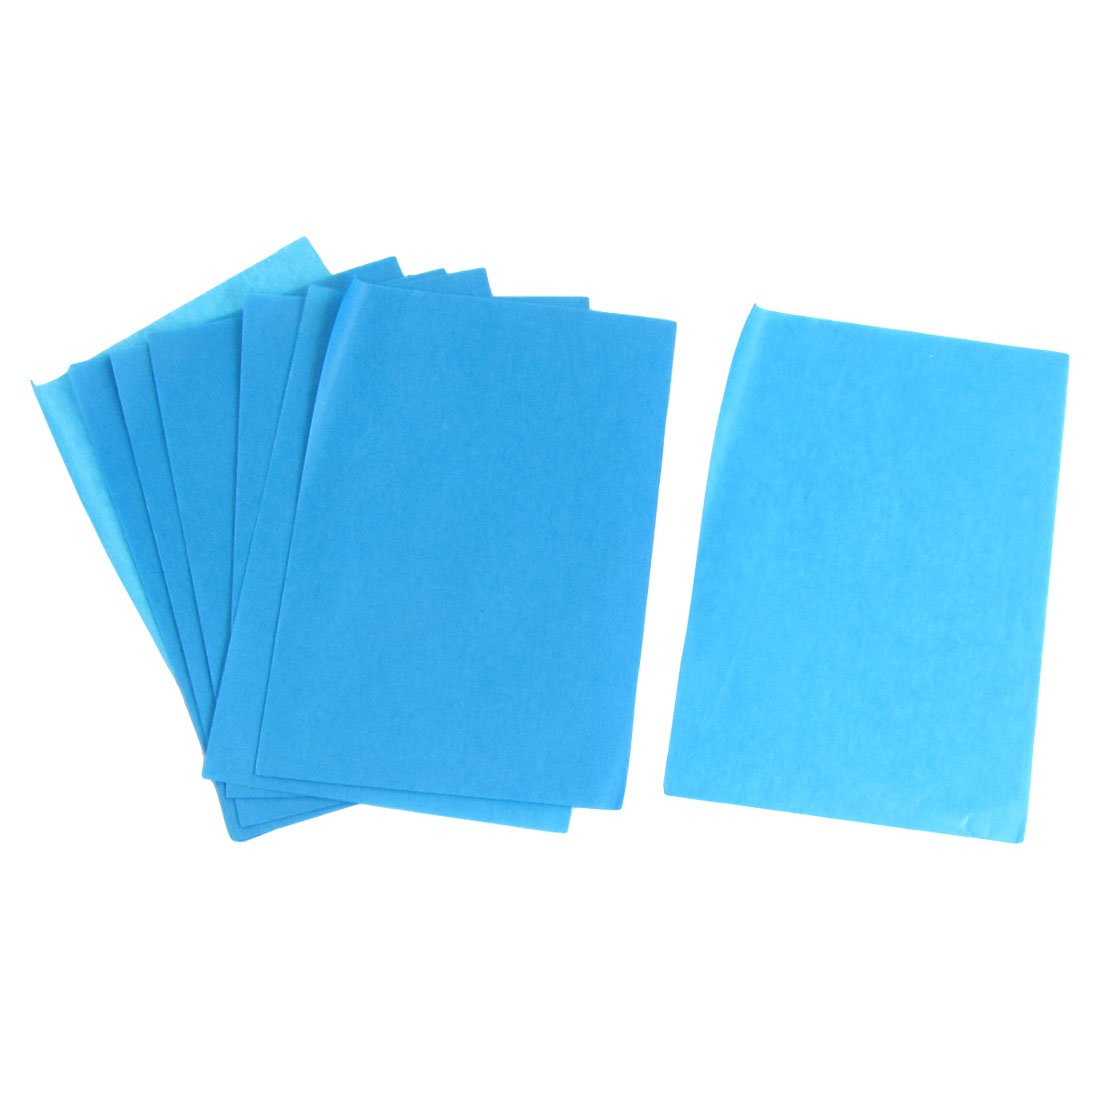 Lady Cosmetic Facial Oil Blotting Paper Sheets 100 Pcs Blue Green BeautyLand a12051500ux0162